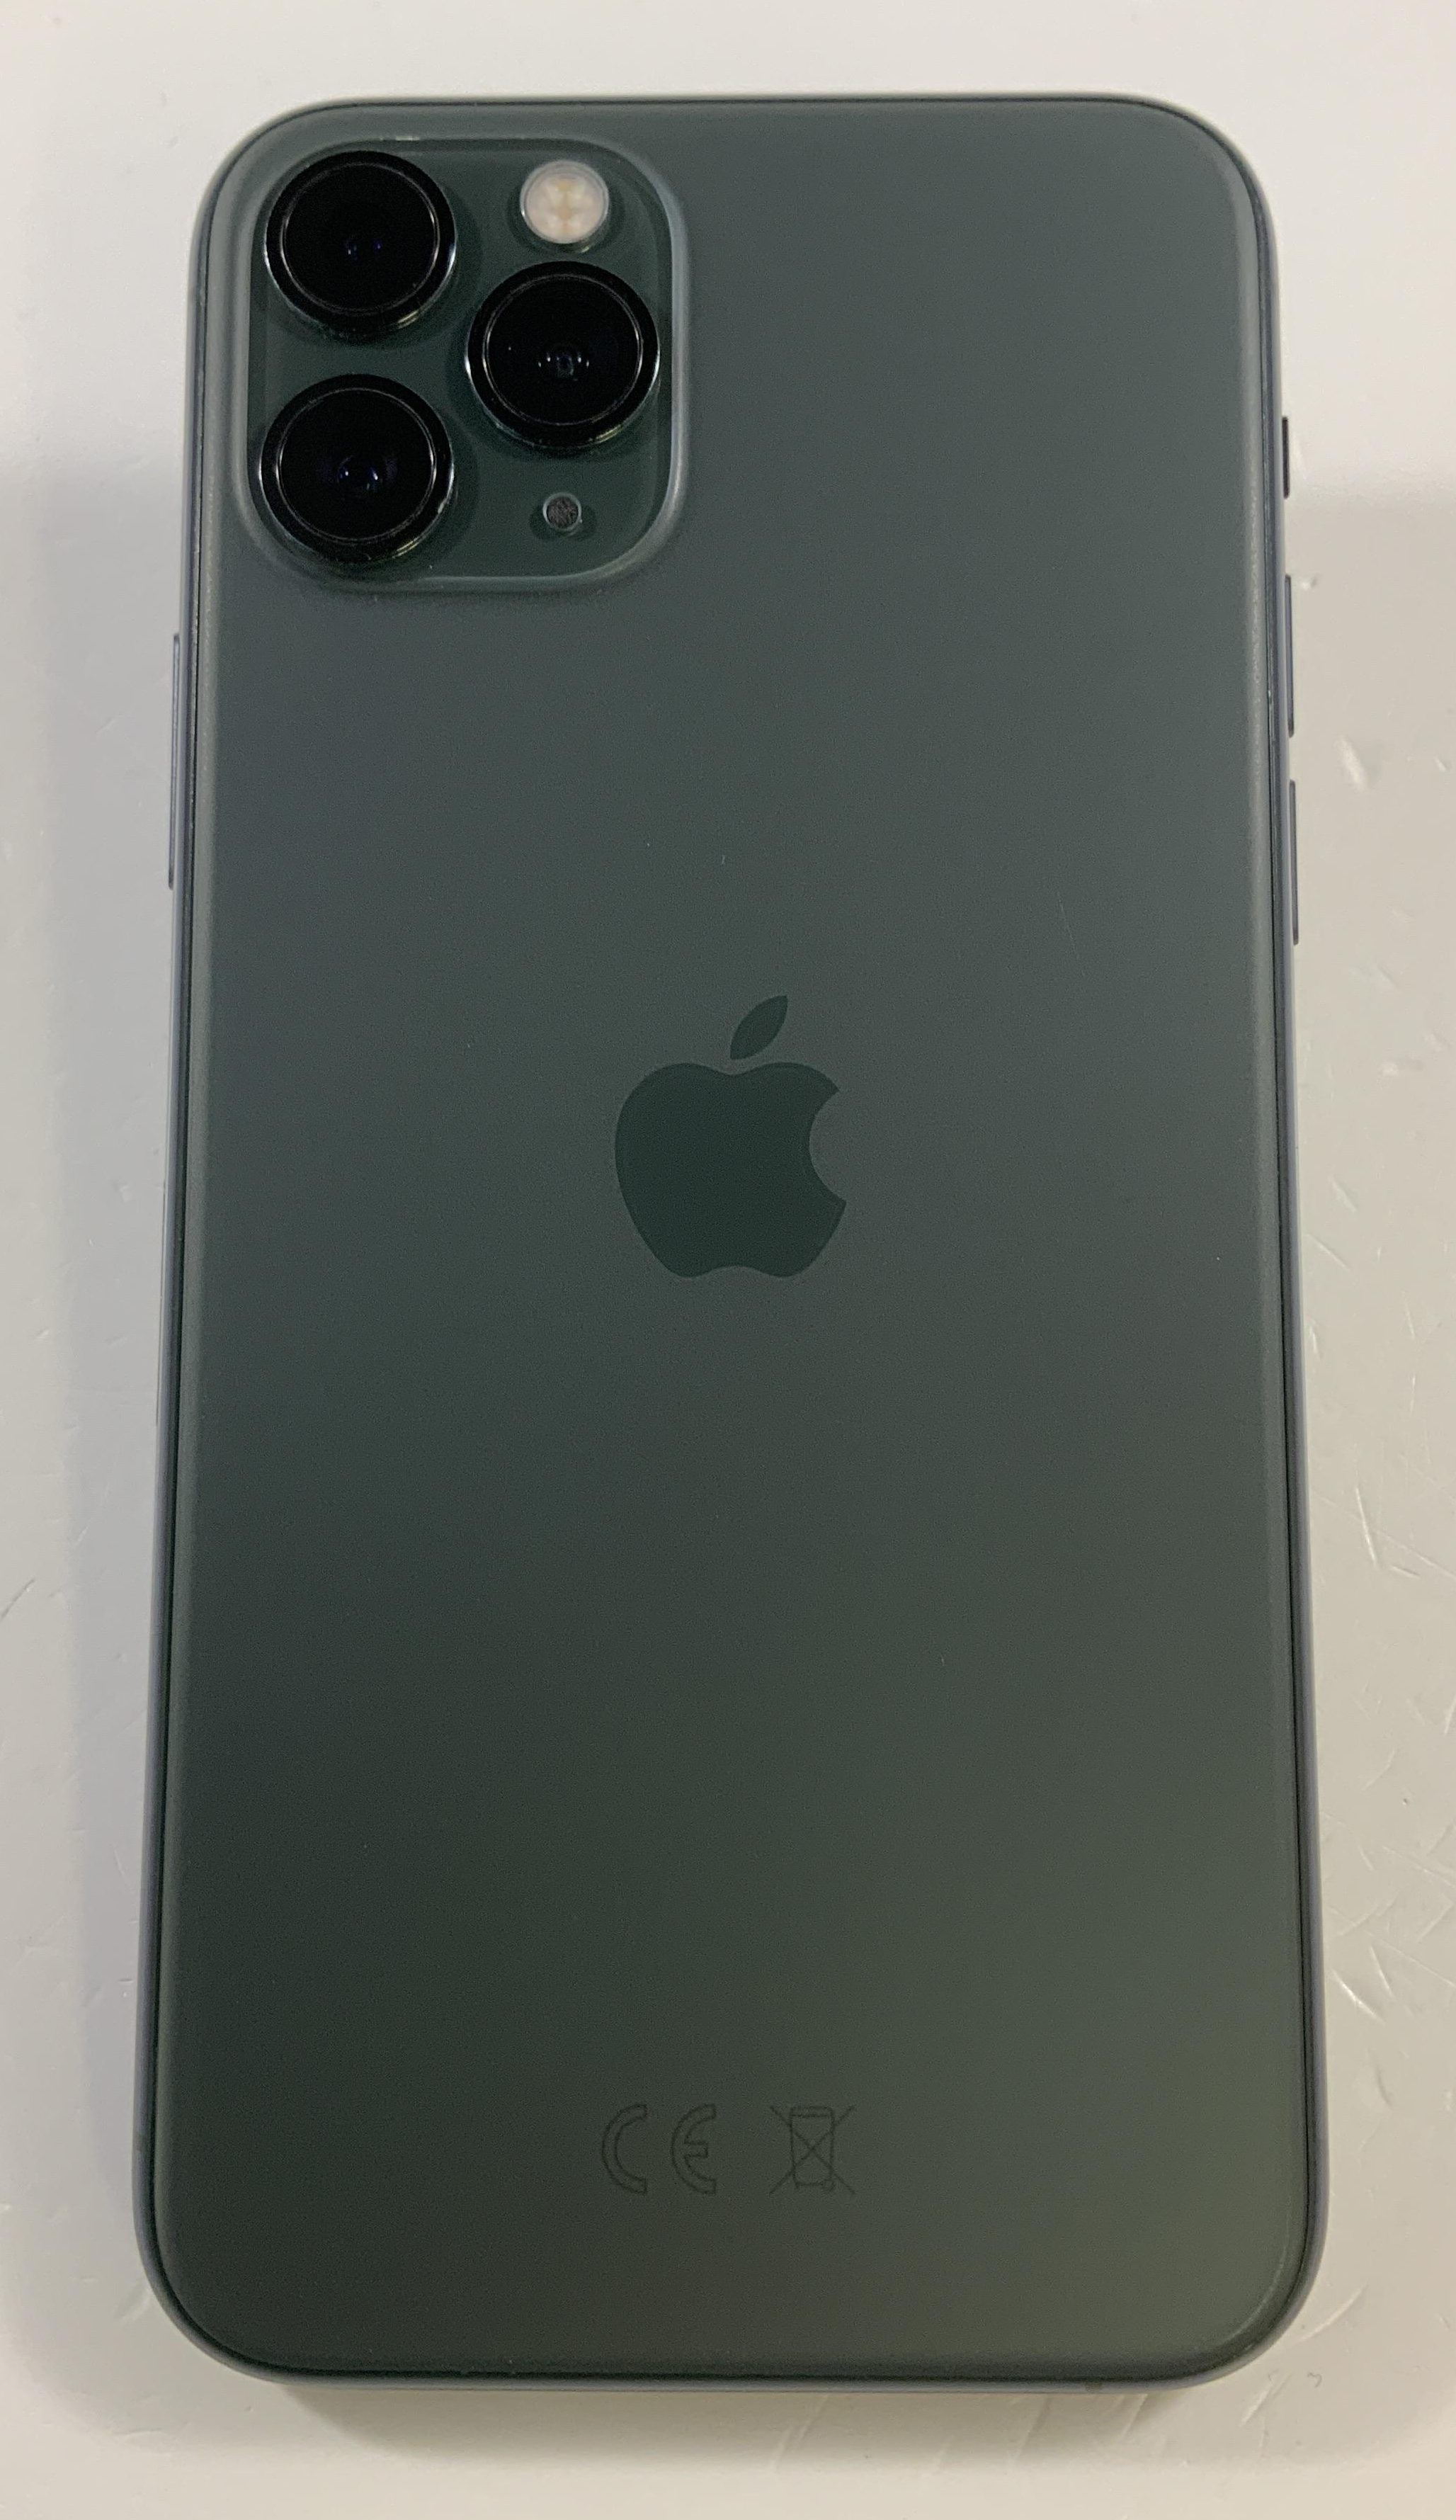 iPhone 11 Pro 64GB, 64GB, Midnight Green, immagine 2